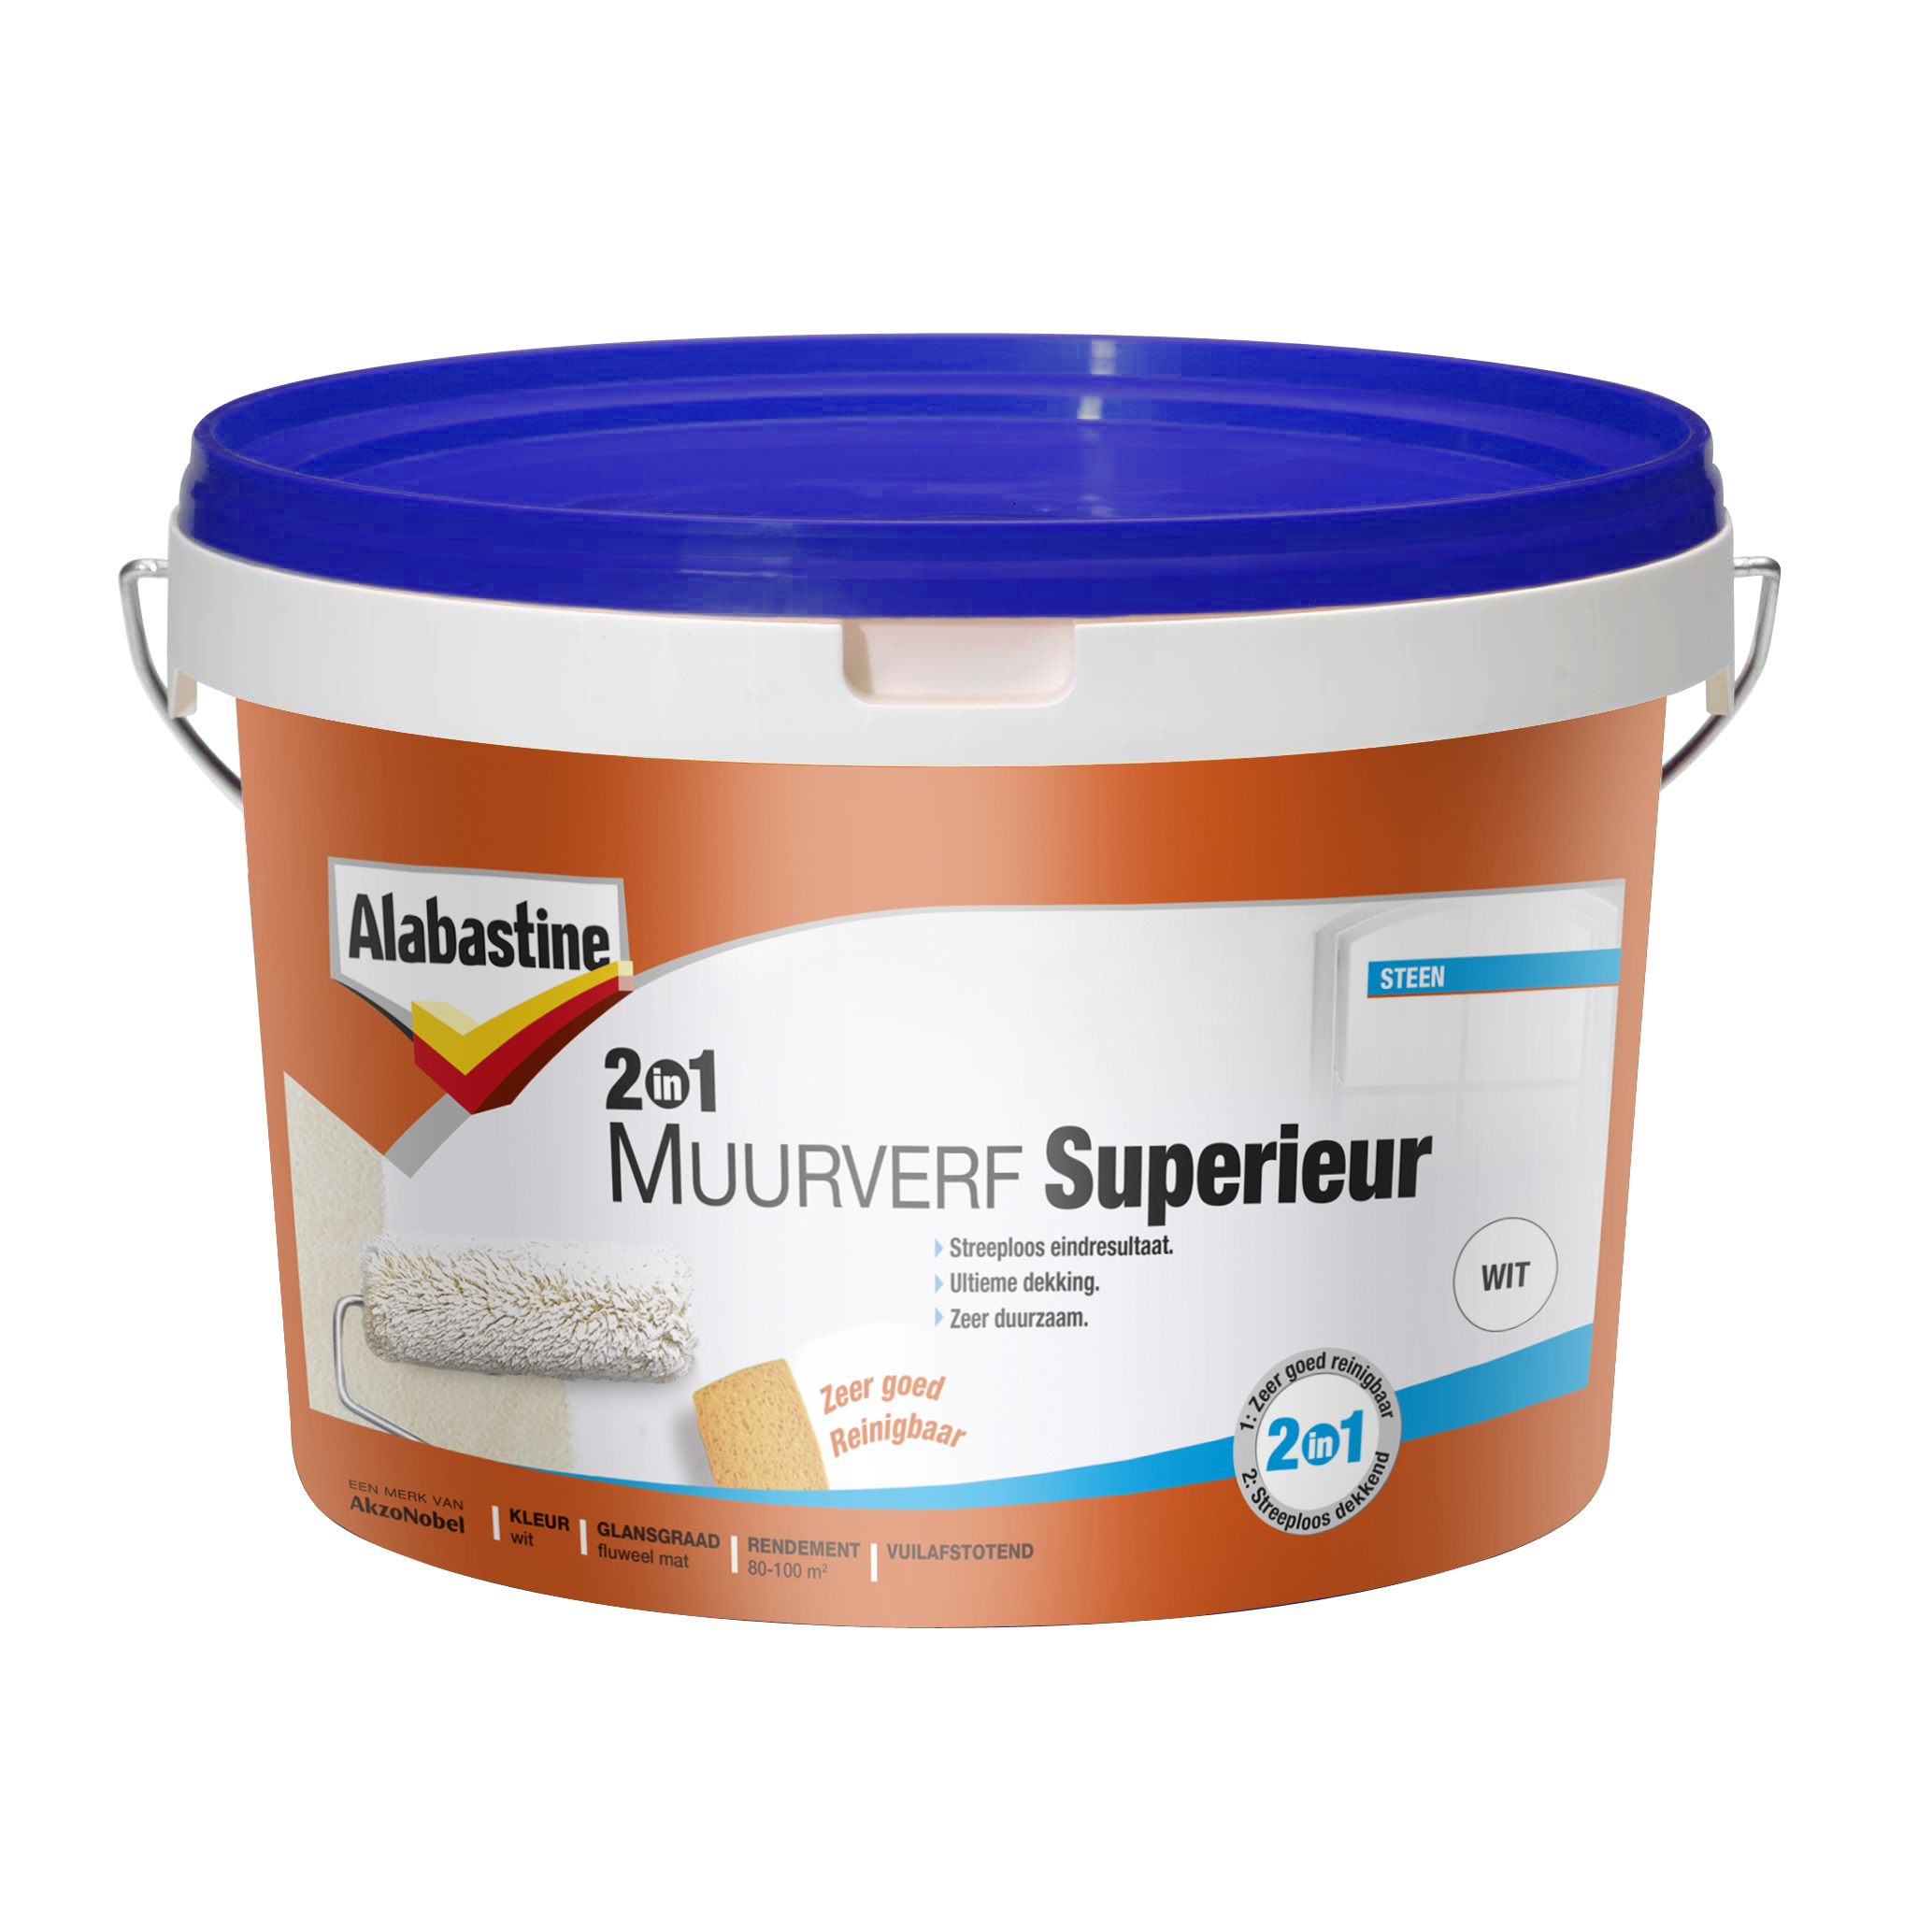 Alabastine muurverf 2 in 1